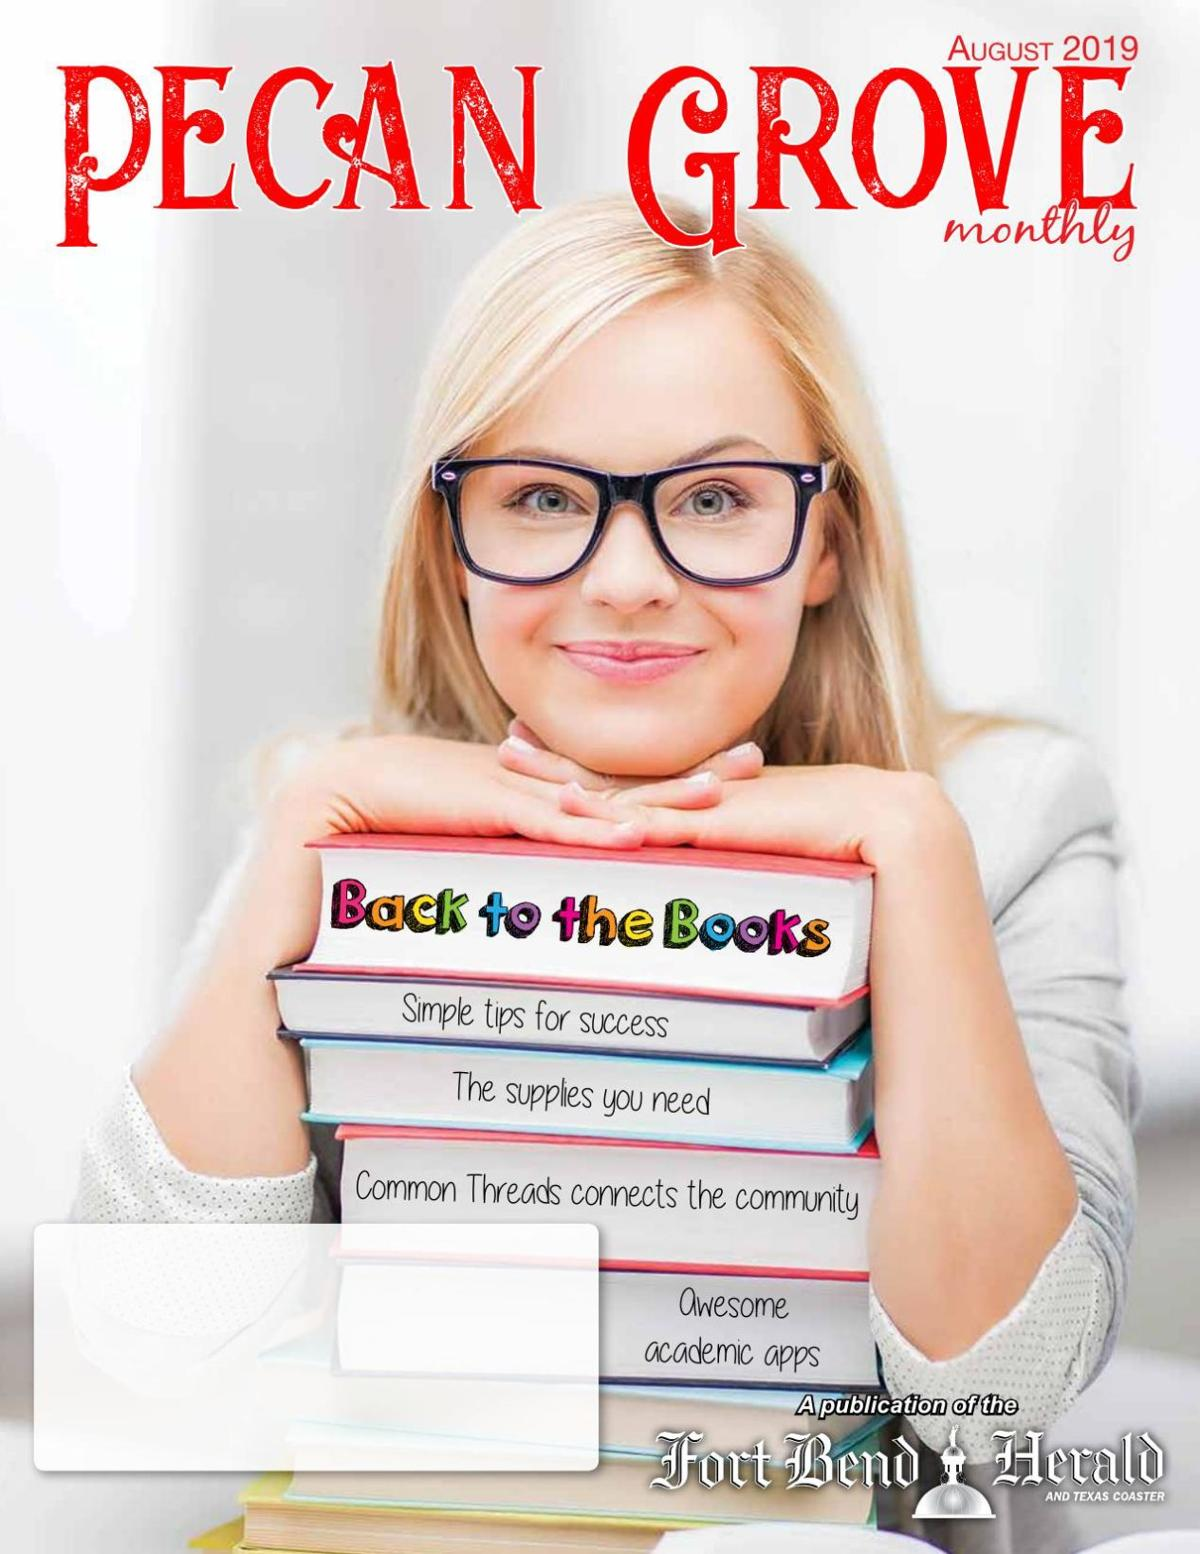 Pecan Grove Monthly: August 2019